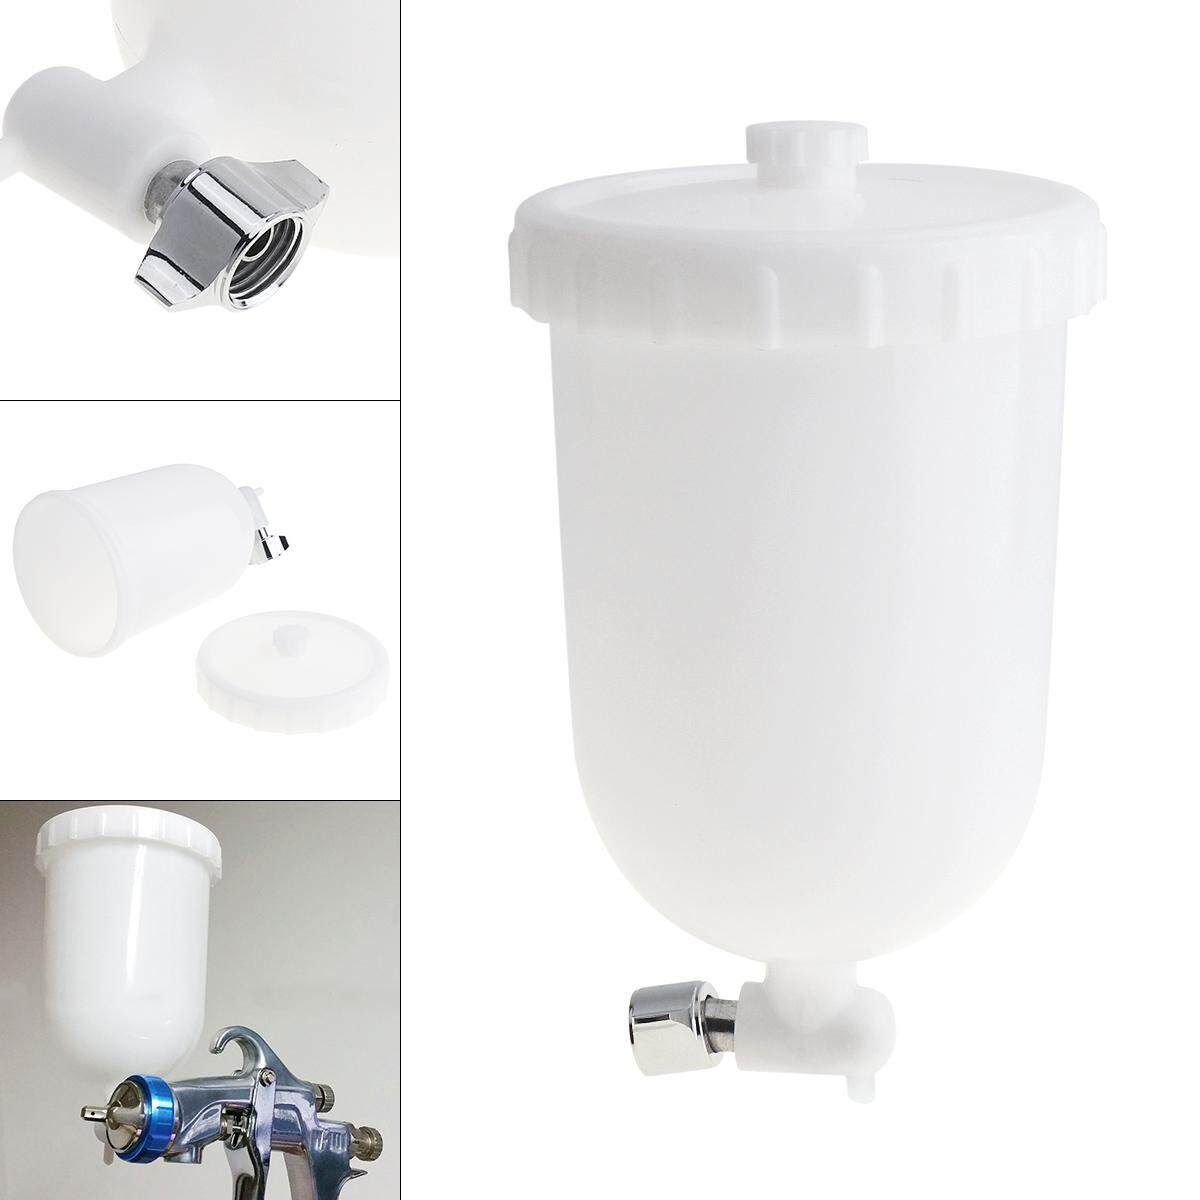 400ml White Spray Gun Paint Cup ABS Plastic Pot with 1/4 Interface Diameter Internal Thread for Holding Liquid